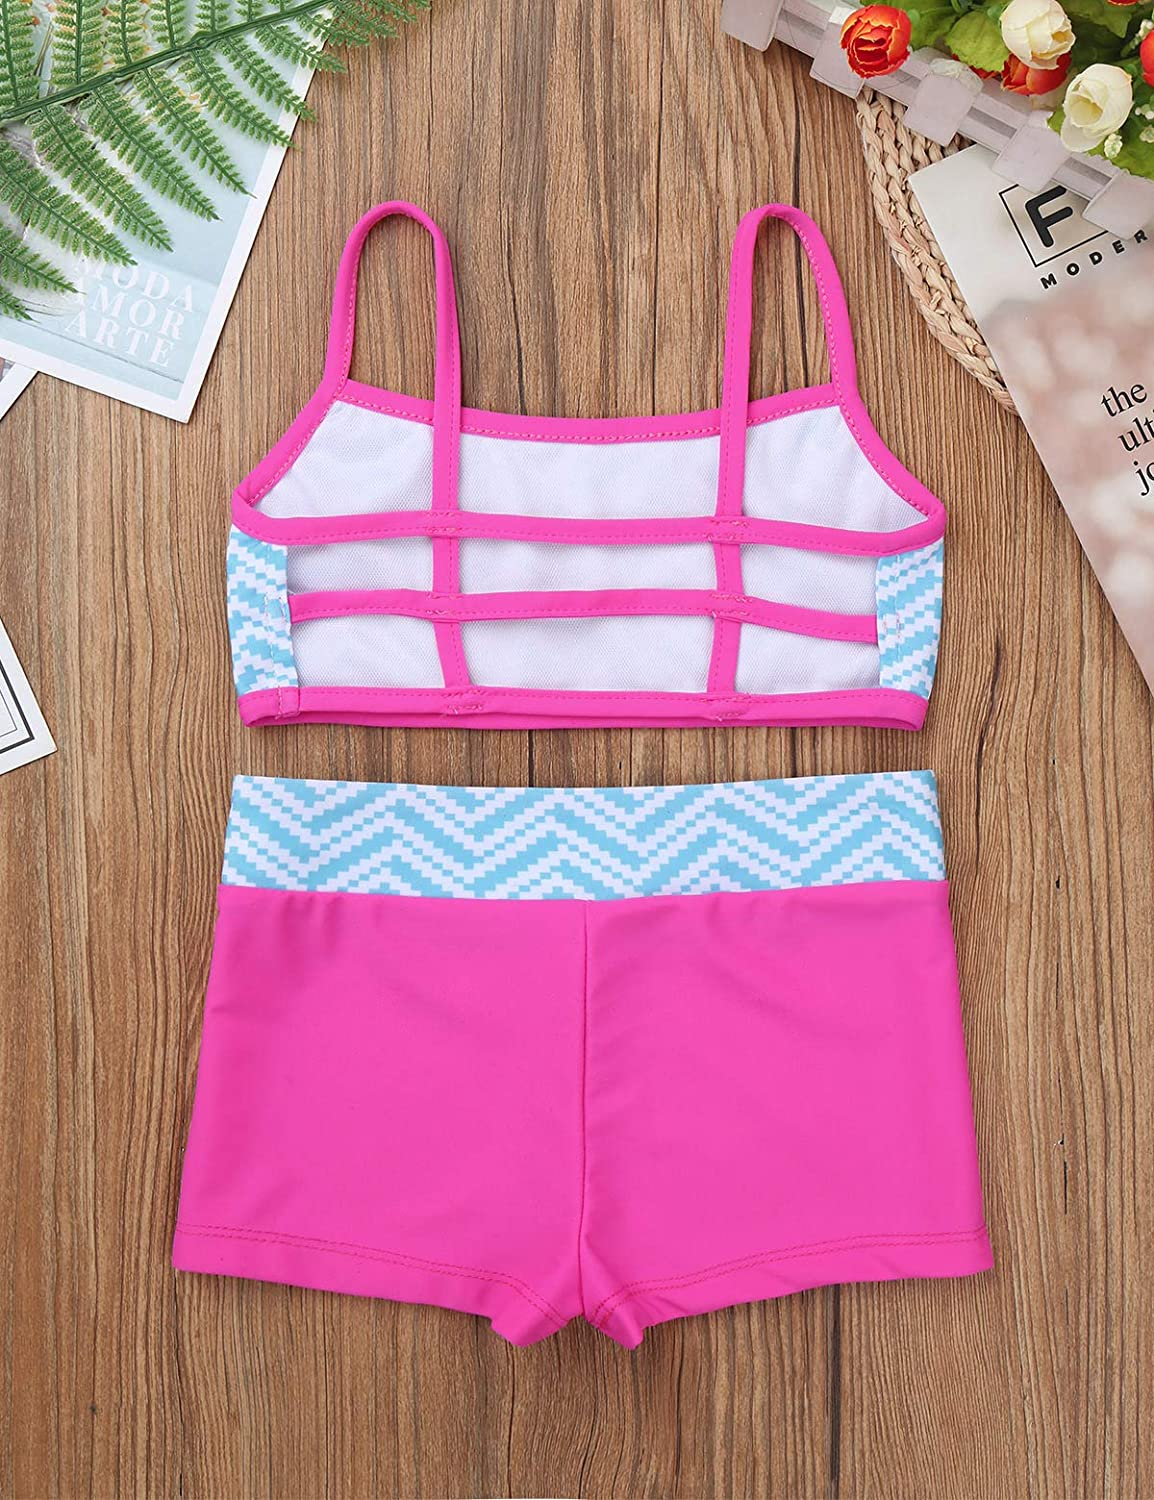 TiaoBug Kid Girls Two-Piece Strap Crop Top Bra with Boyshorts Athletic Clothing Sets Gymnastic Sport Dancing Activewear